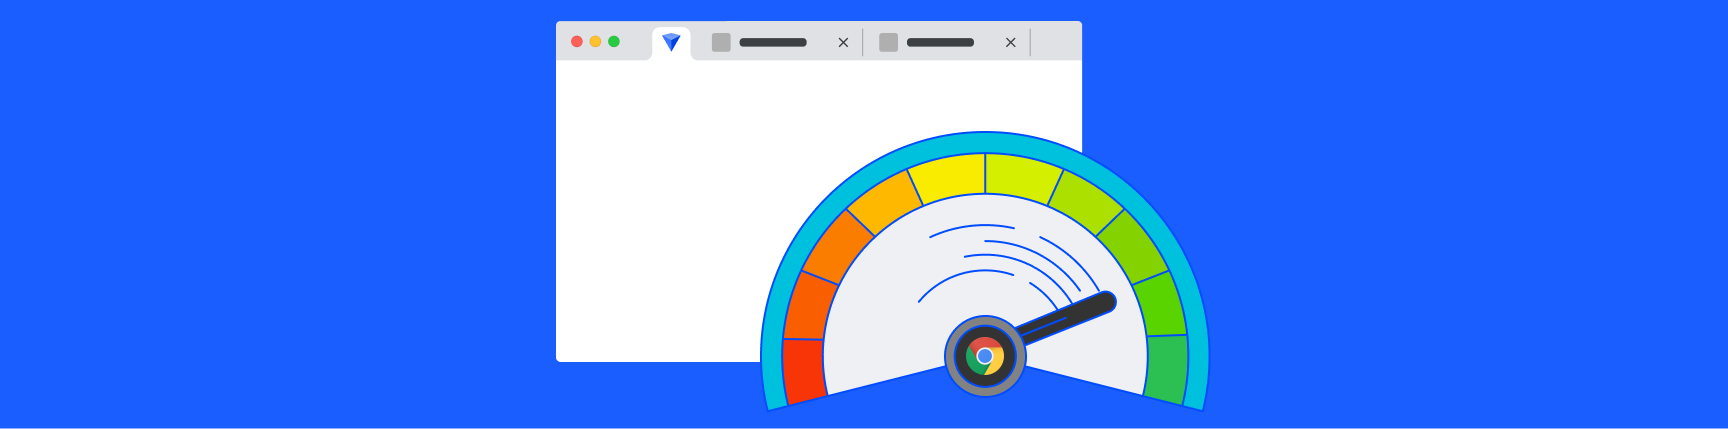 Google Chrome logo inside a meter showing memory usage